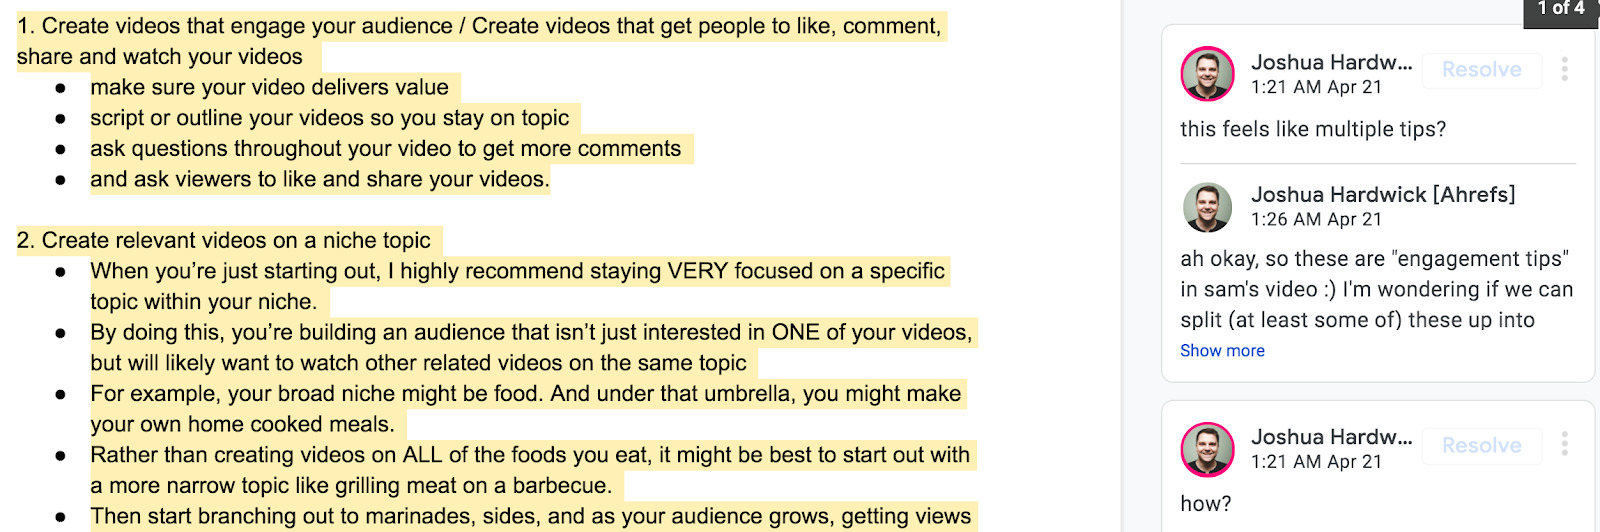 outline how to get more views